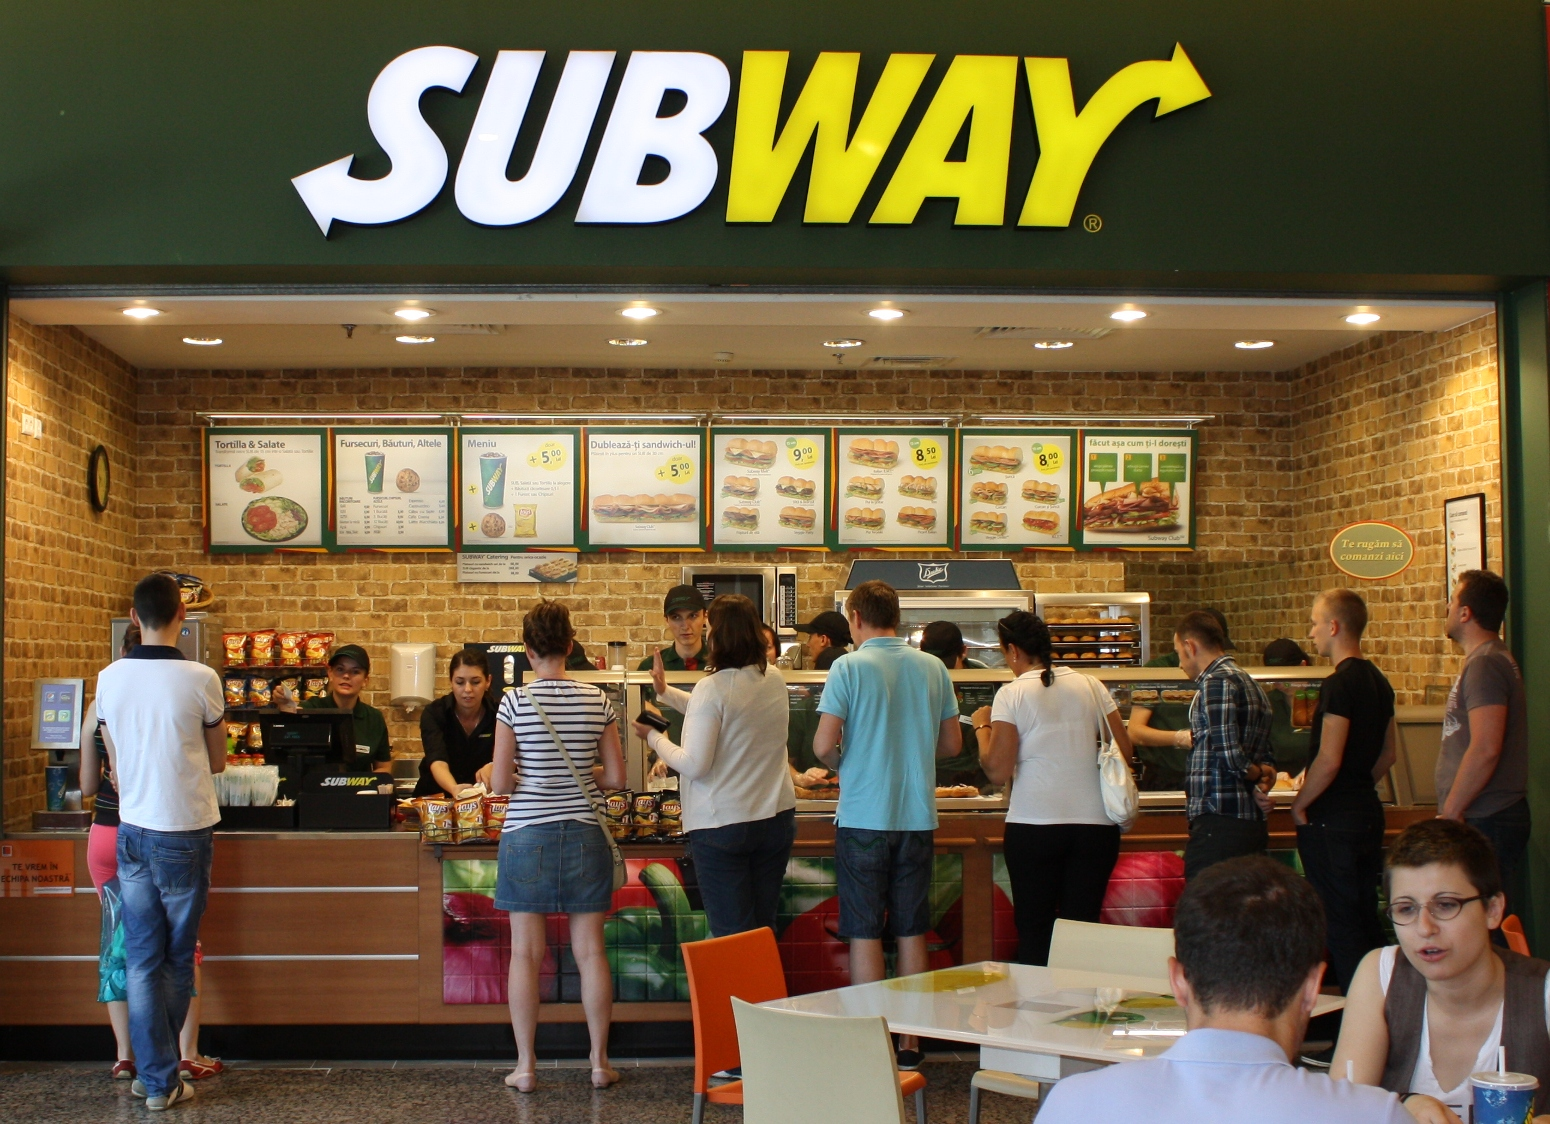 US 'Subway' sandwich shop accept bitcoins